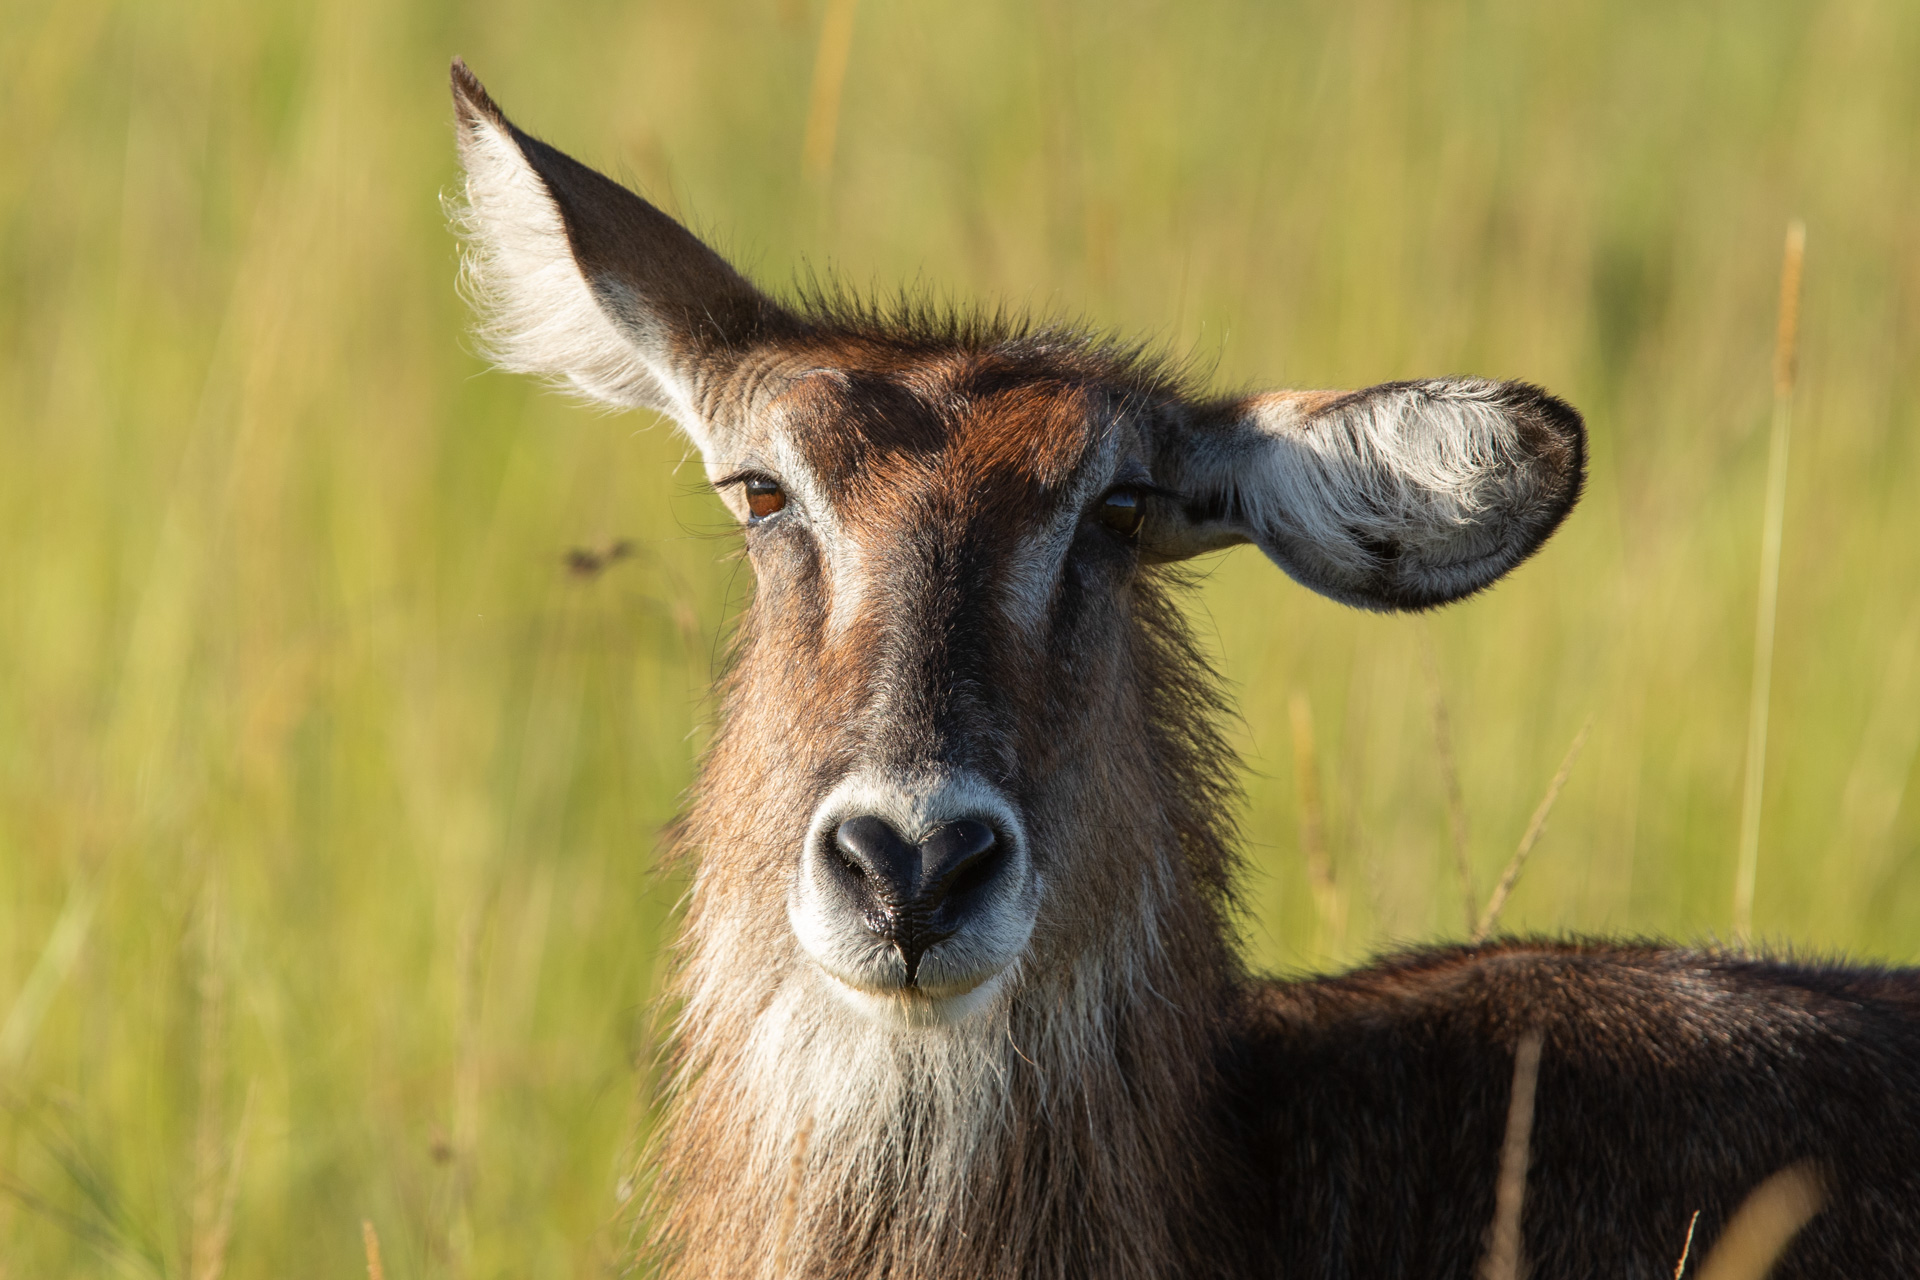 waterbuck with bent ear